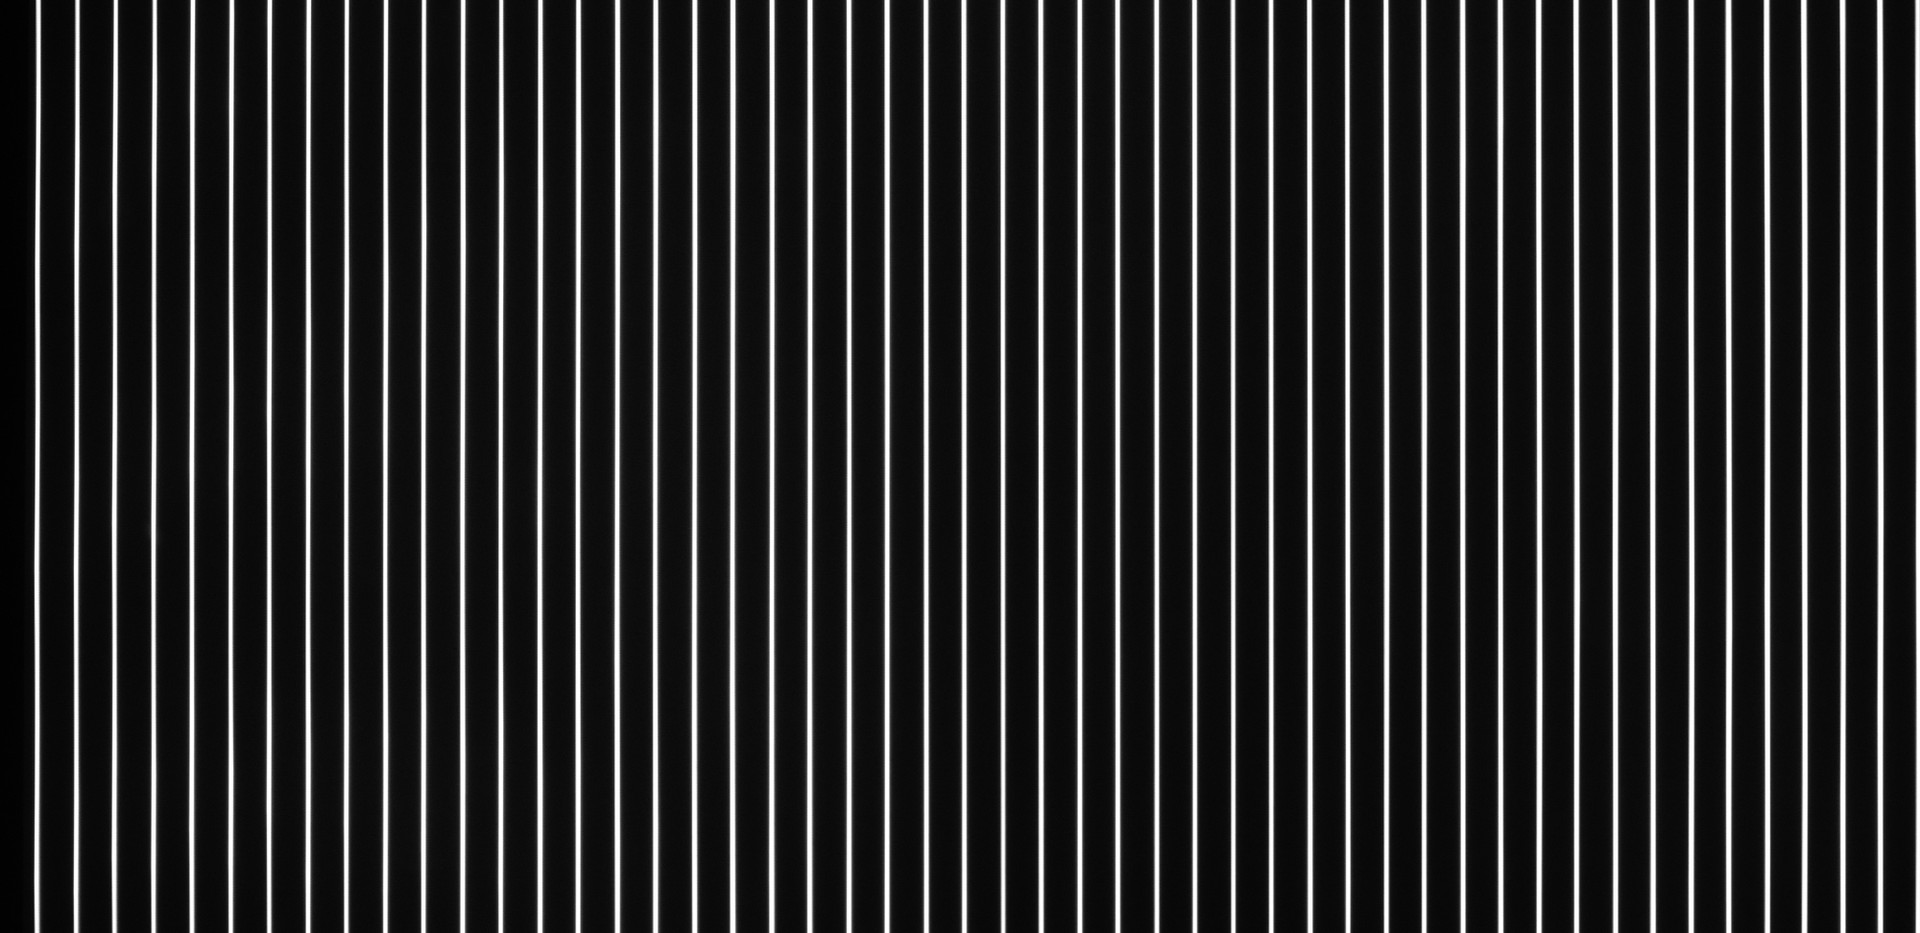 1 fifty_lines_spread_over_127_centimeter